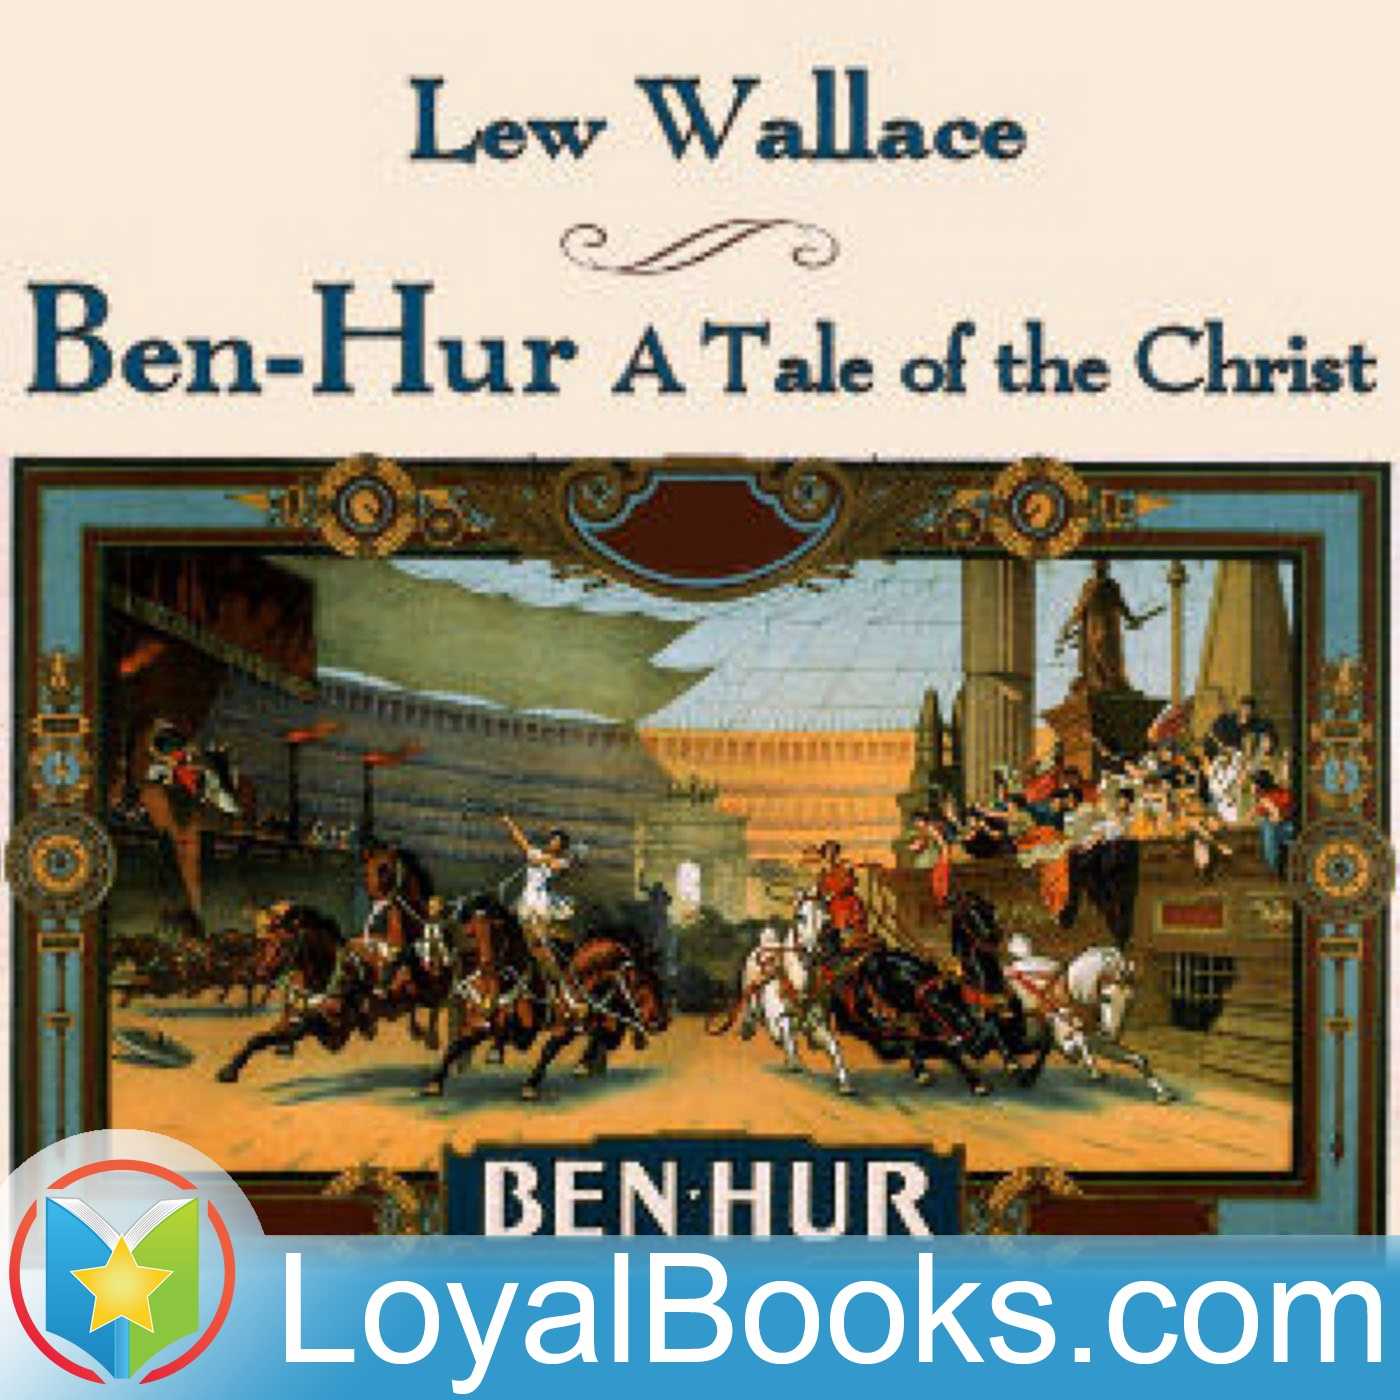 <![CDATA[Ben-Hur: A Tale of the Christ by Lew Wallace]]>